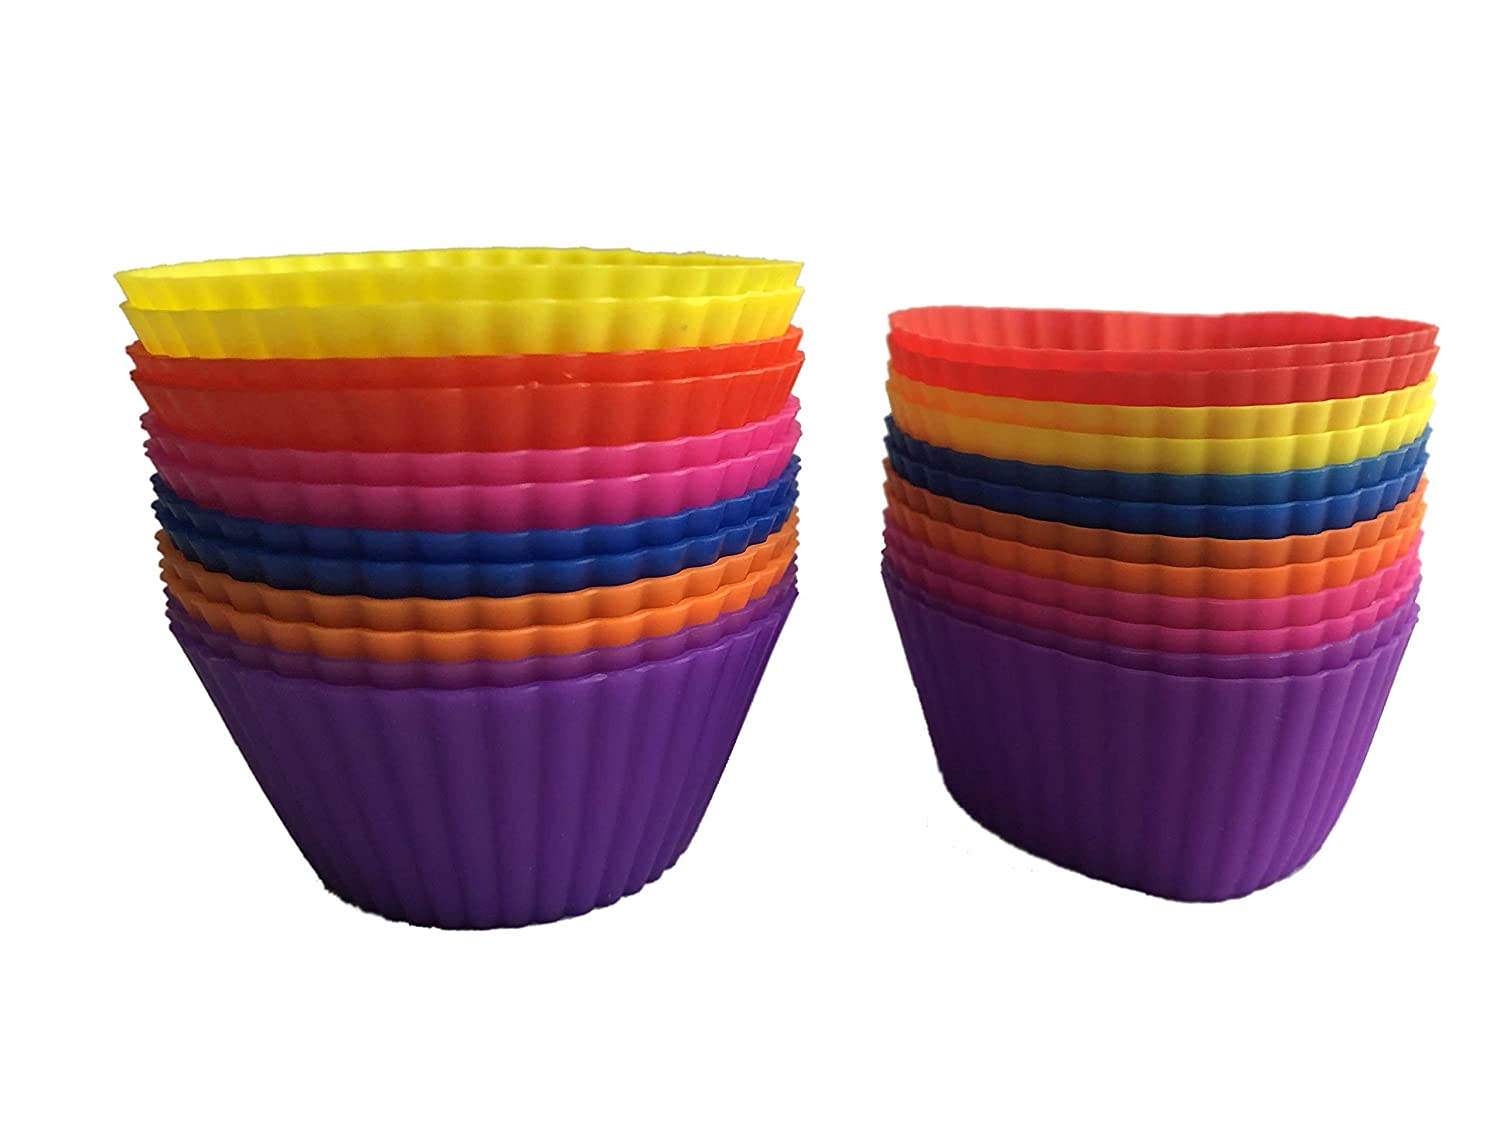 Cupcake Silicone Baking Cups Muffin Baking Cups Liner 24-Pack Round & Heart Colorful Reusable Non-Stick Cake Molds Sets (396)